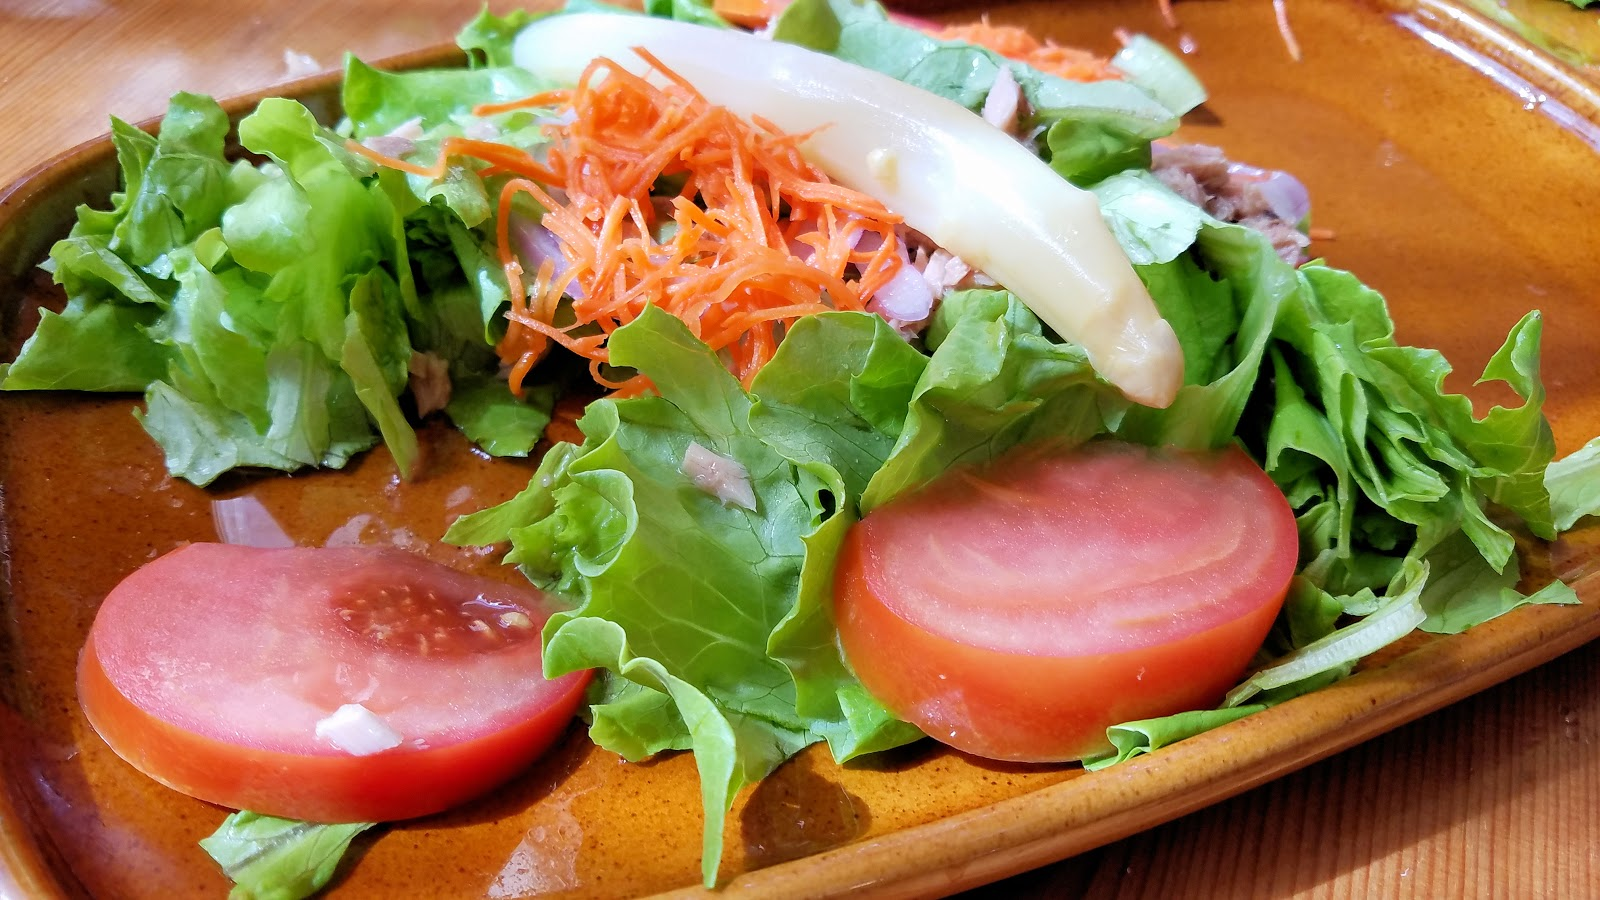 A fresh salad is always a delicious way to begin each meal.